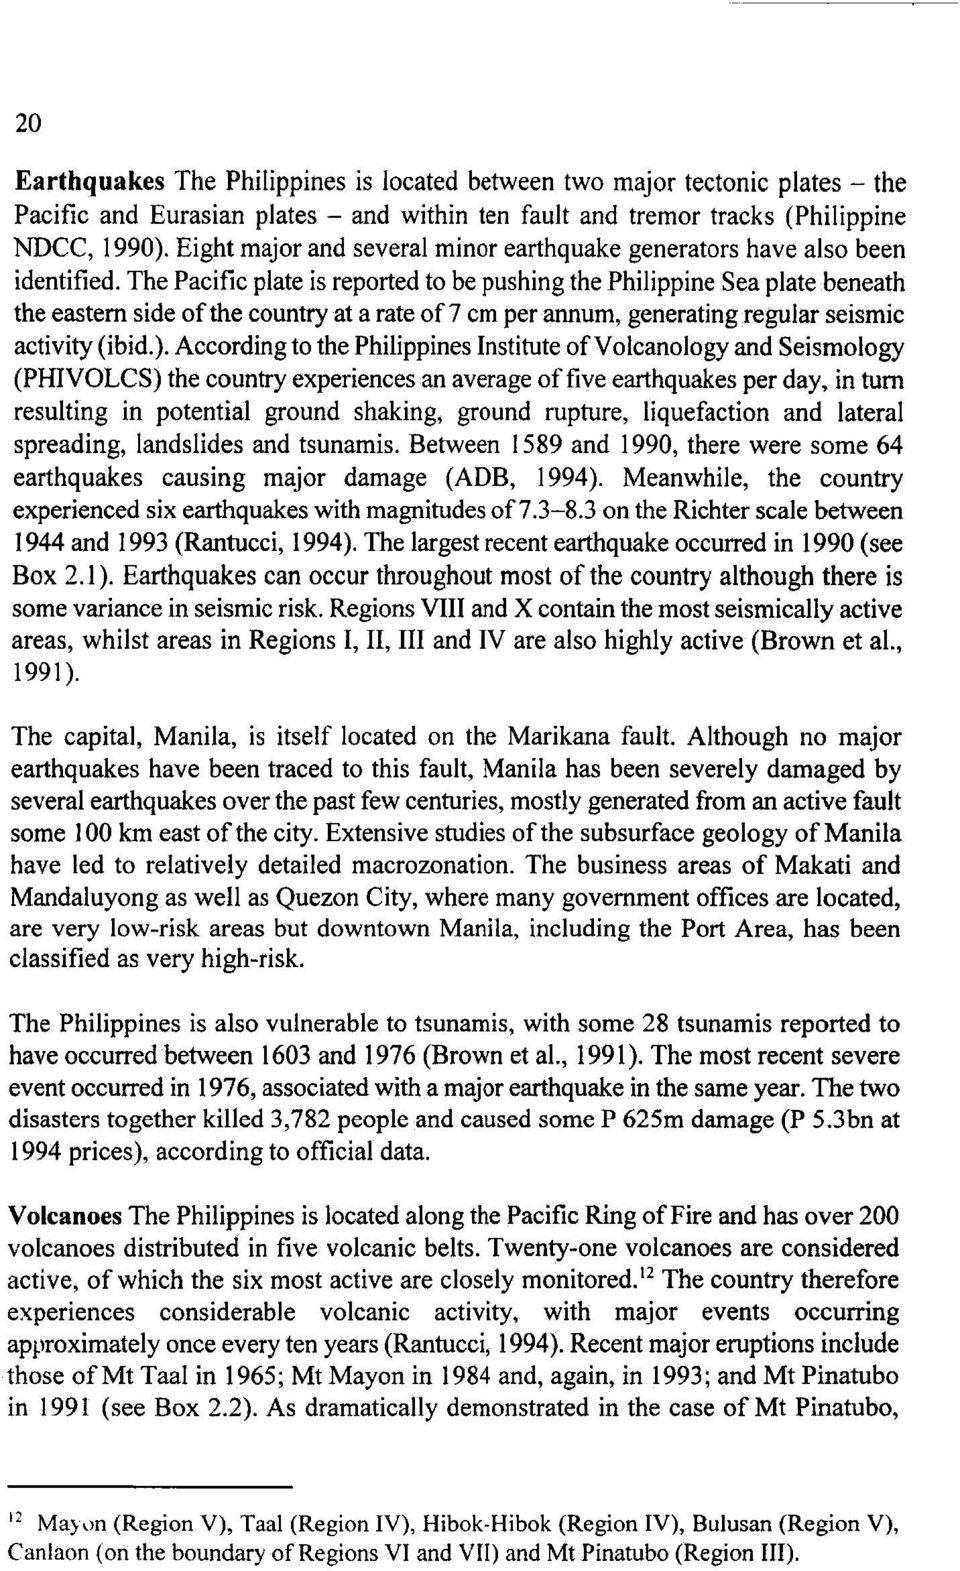 THE ECONOMIC IMPACT OF NATURAL DISASTERS IN THE PHILIPPINES